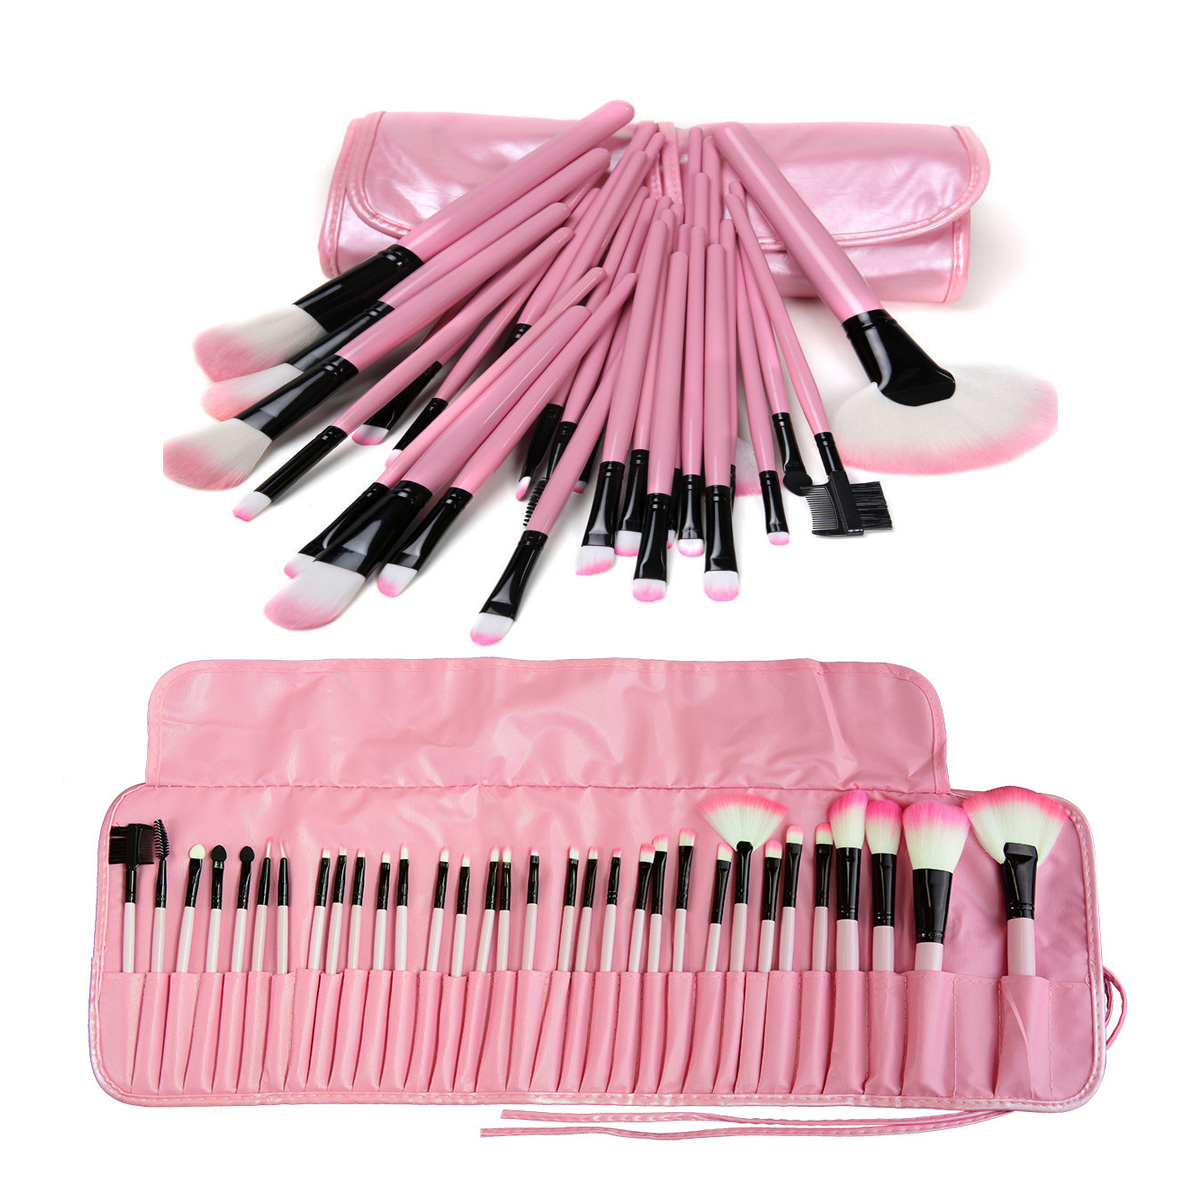 Pro 32Pcs Makeup Brushes Set for Women Fashion Soft Face Lip Eyebrow Shadow Cosmetic Make Up Brush Set Kit with Pouch Bag free shipping durable 32pcs soft makeup brushes professional cosmetic make up brush set